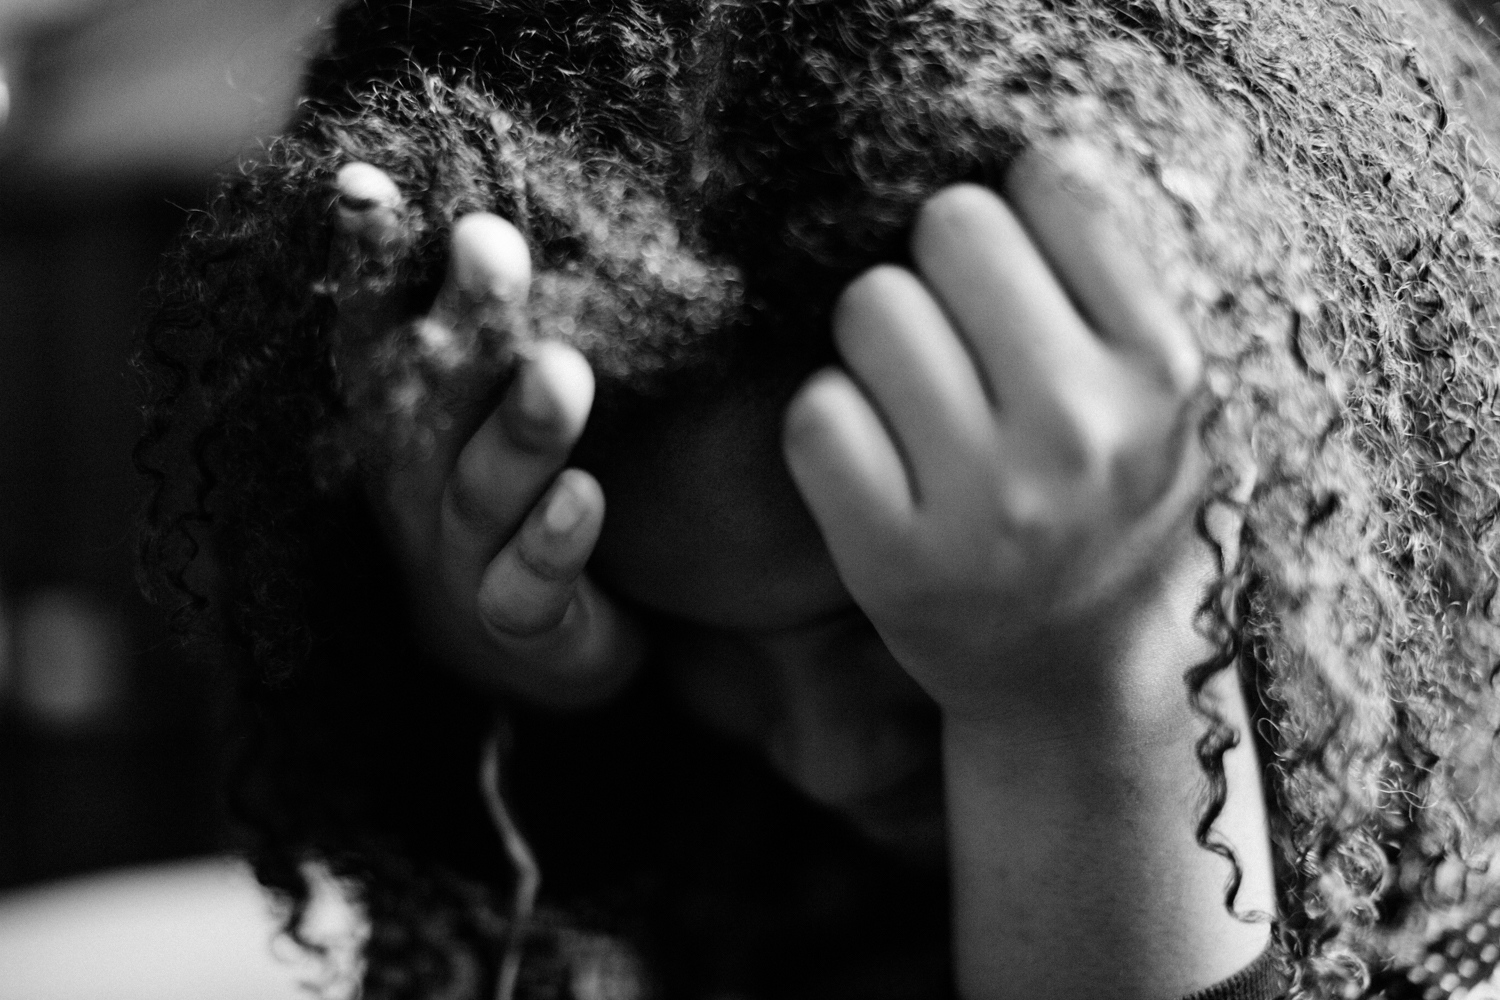 """Dasani rests her head August 3, 2016 at Duke University's Summer Program. """"Now I could see what's at stake,"""" says Dasani. """"It's much more at stake for me because I'm black. I live in a ghetto neighborhood, and I have a low-income family, so they just expect less from me."""""""